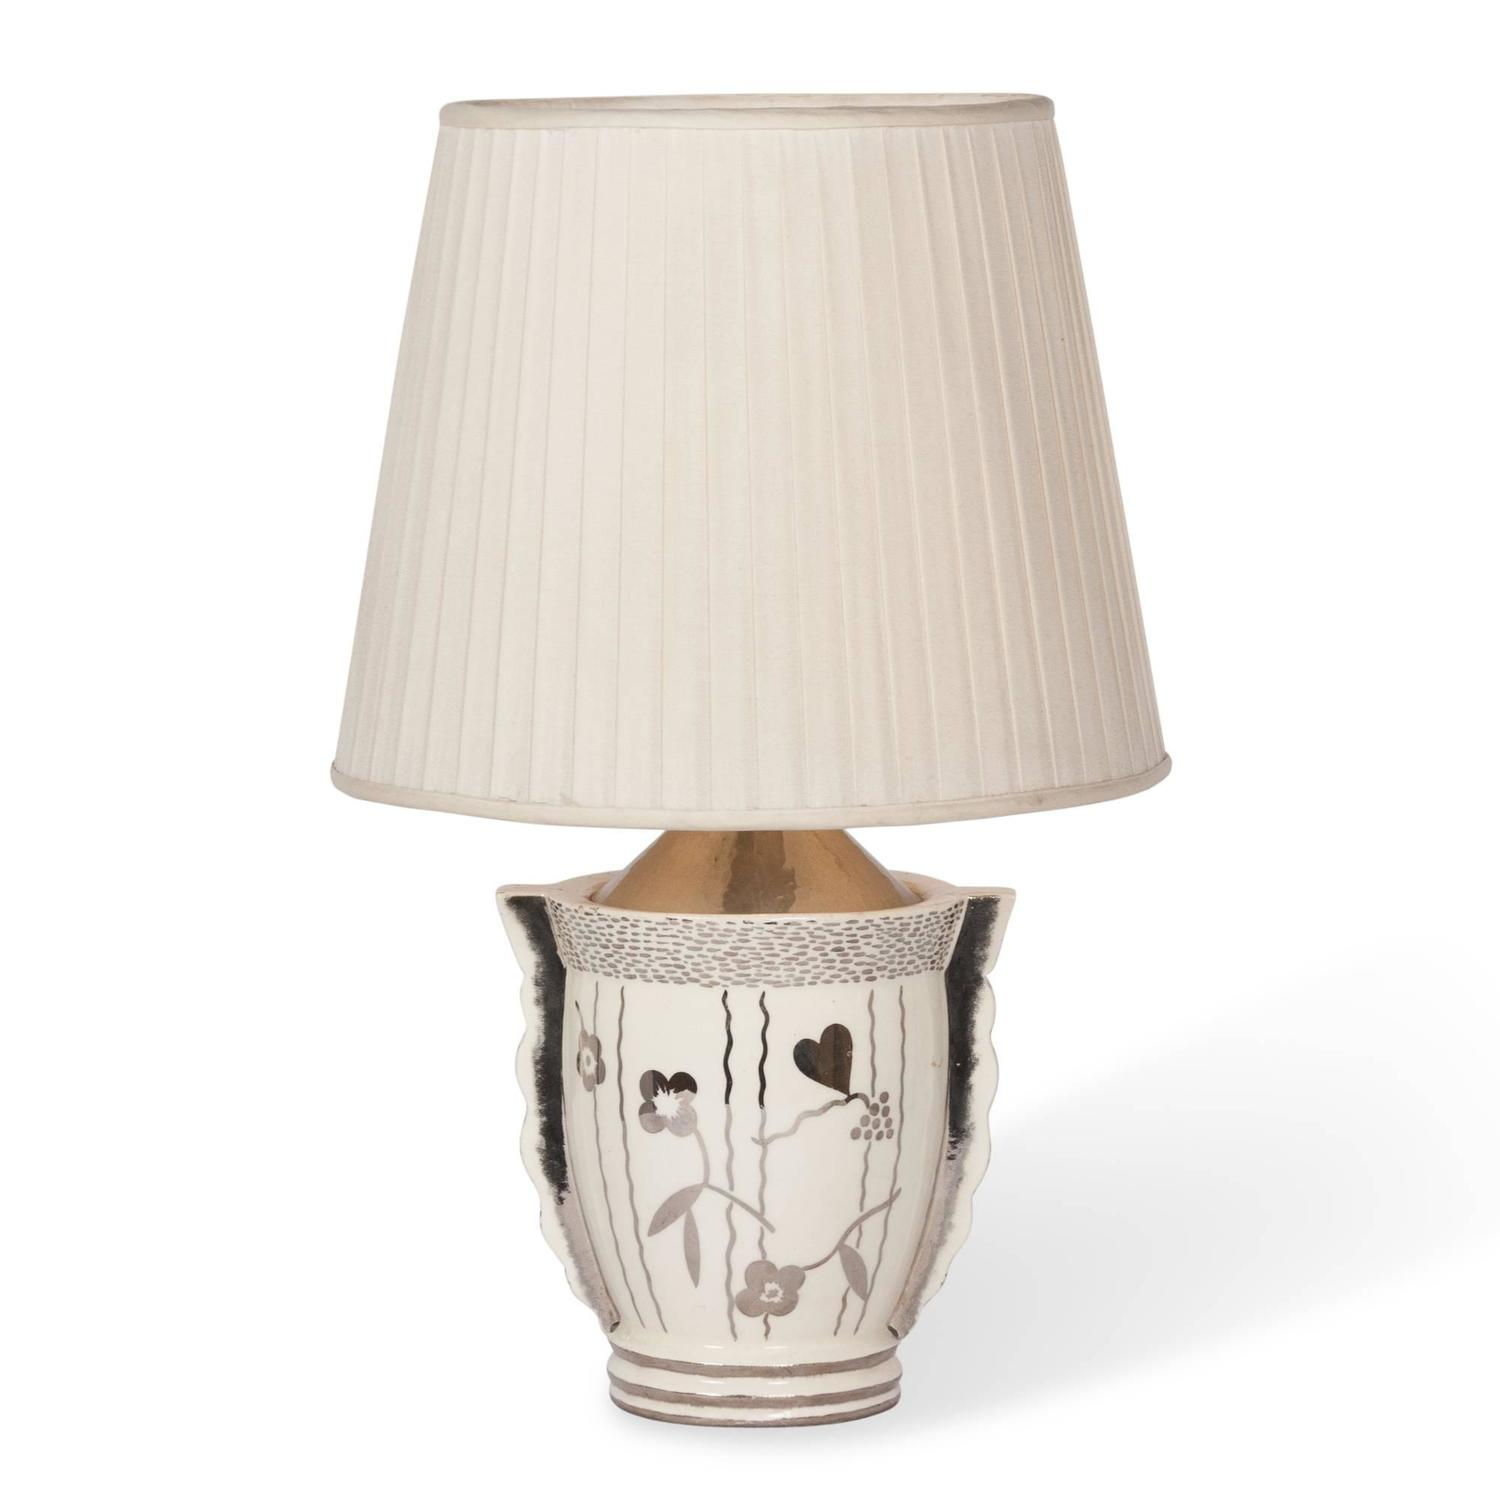 Porcelain Table Lamp By Primavera French 1930s At 1stdibs